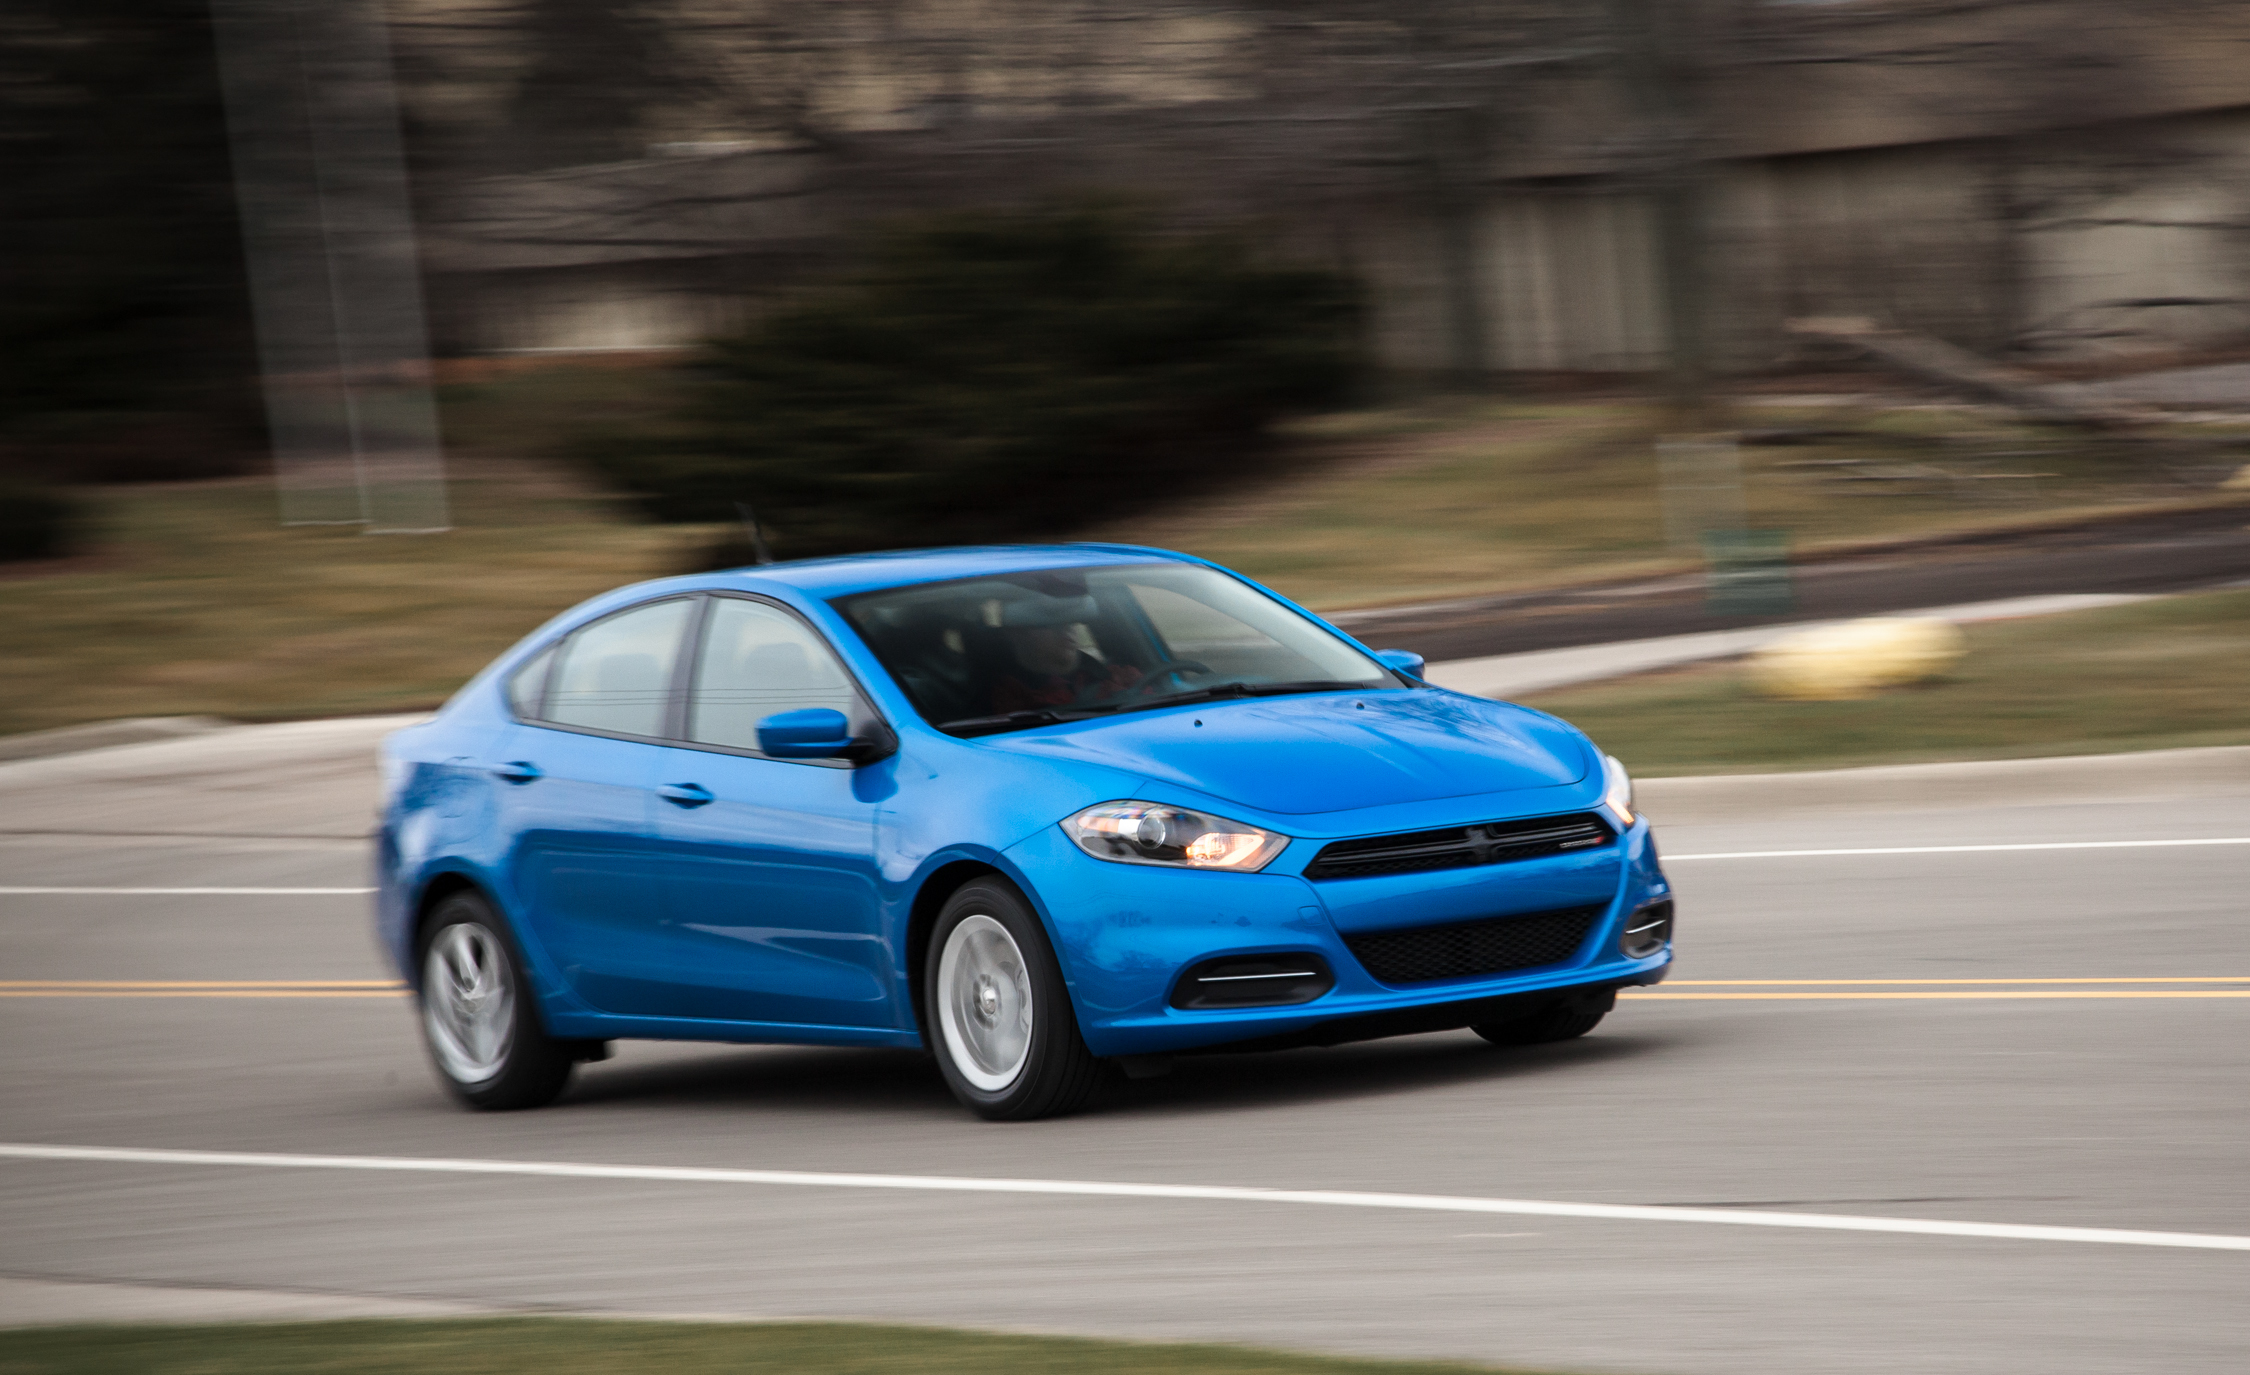 2015 Dodge Dart Pictures Gallery (14 Images)